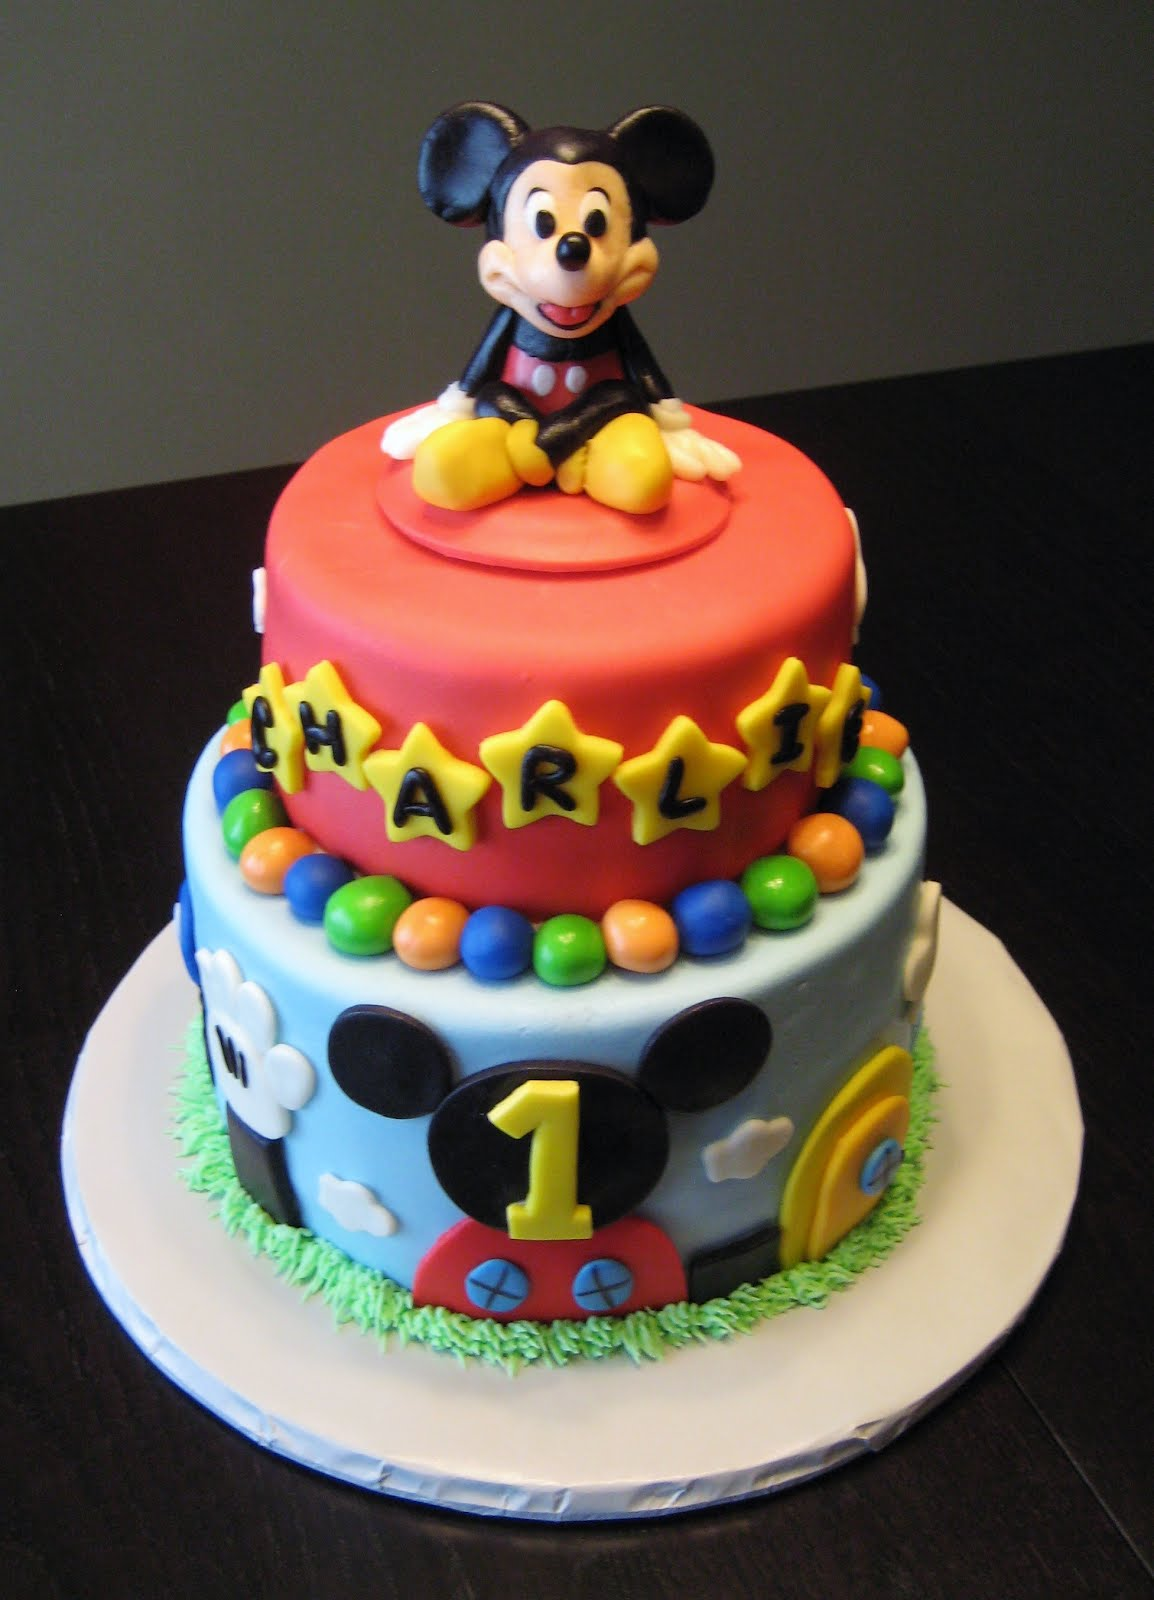 Magnificent Mickey Mouse Cake Ideas 1154 x 1600 · 131 kB · jpeg